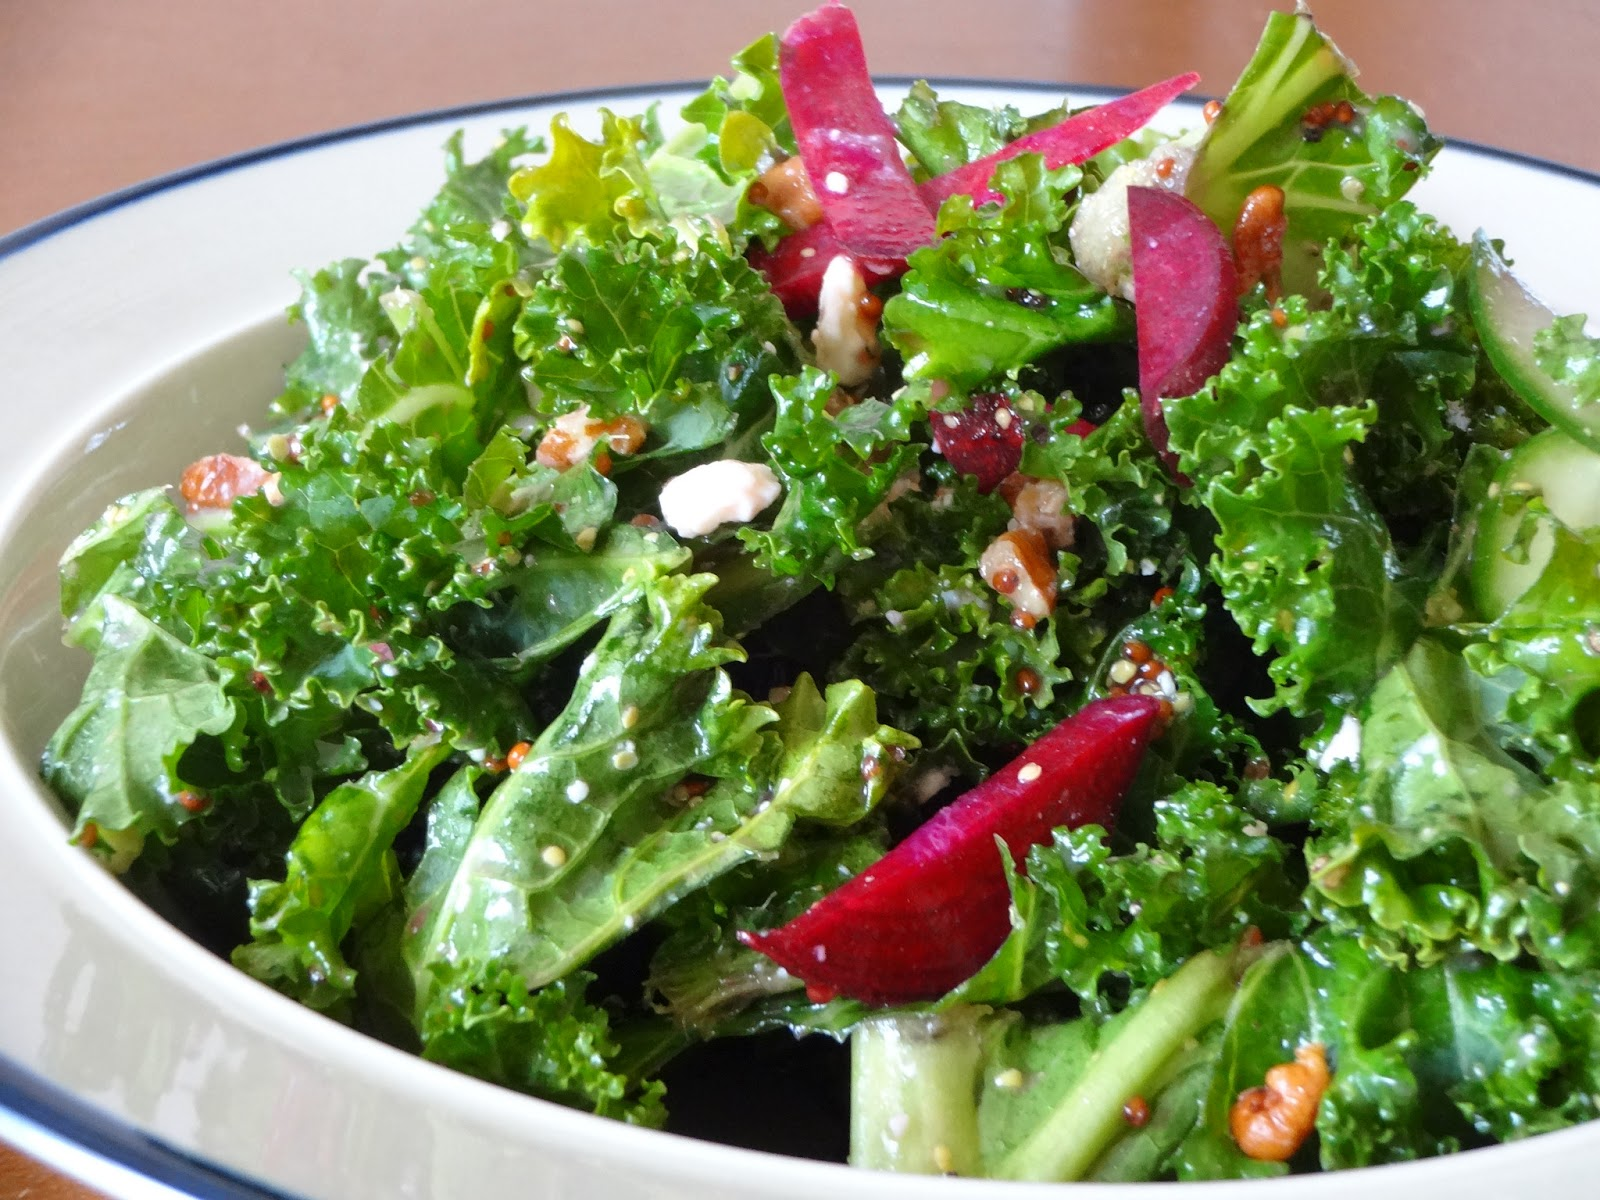 ... Market Fridays: Kale Salad with Cherries, Gorgonzola, and Pecans